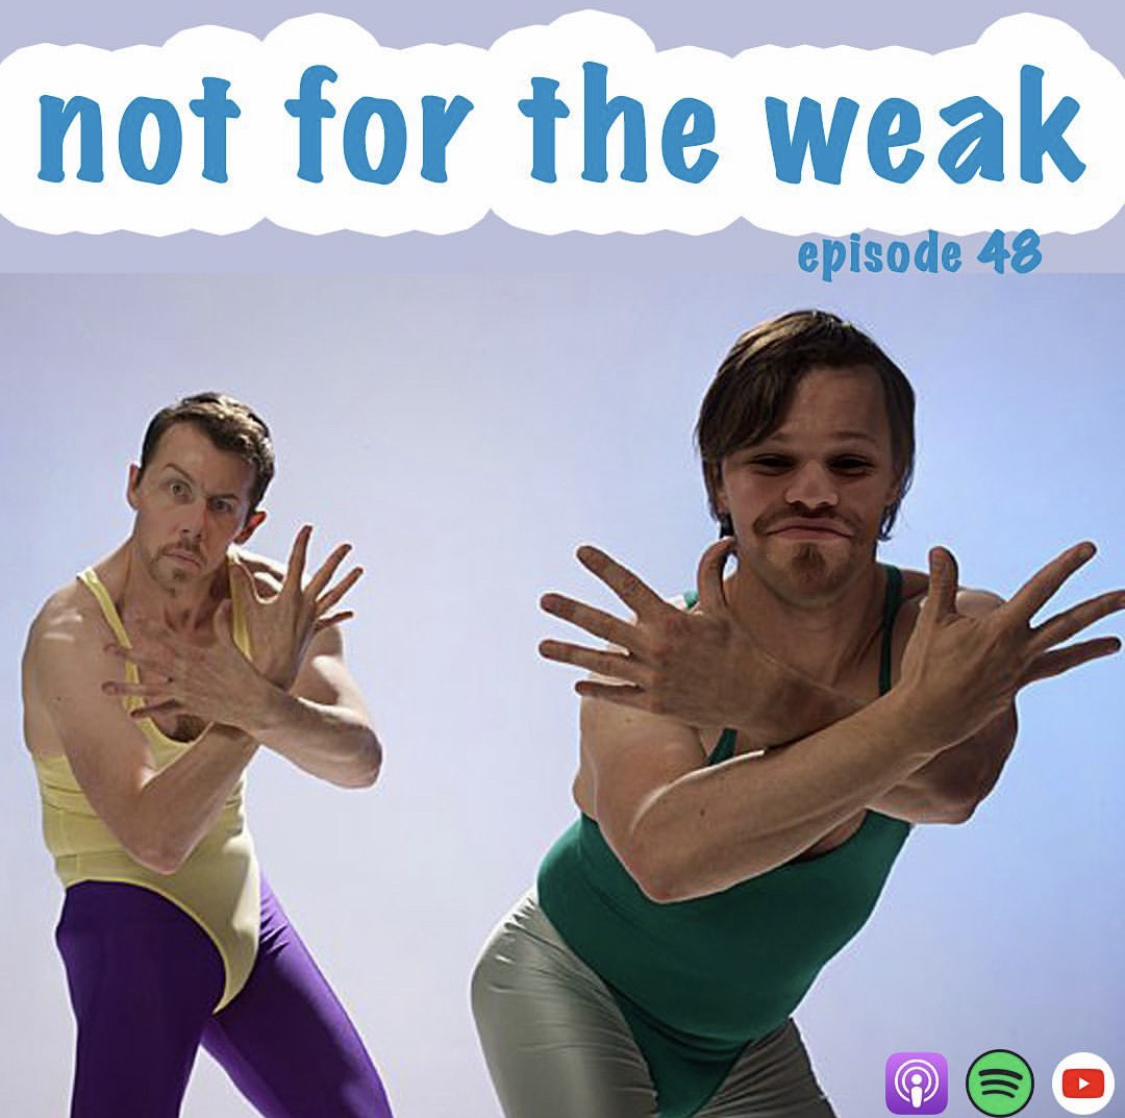 NFTW Episode 48 - No One Cares If You Workout